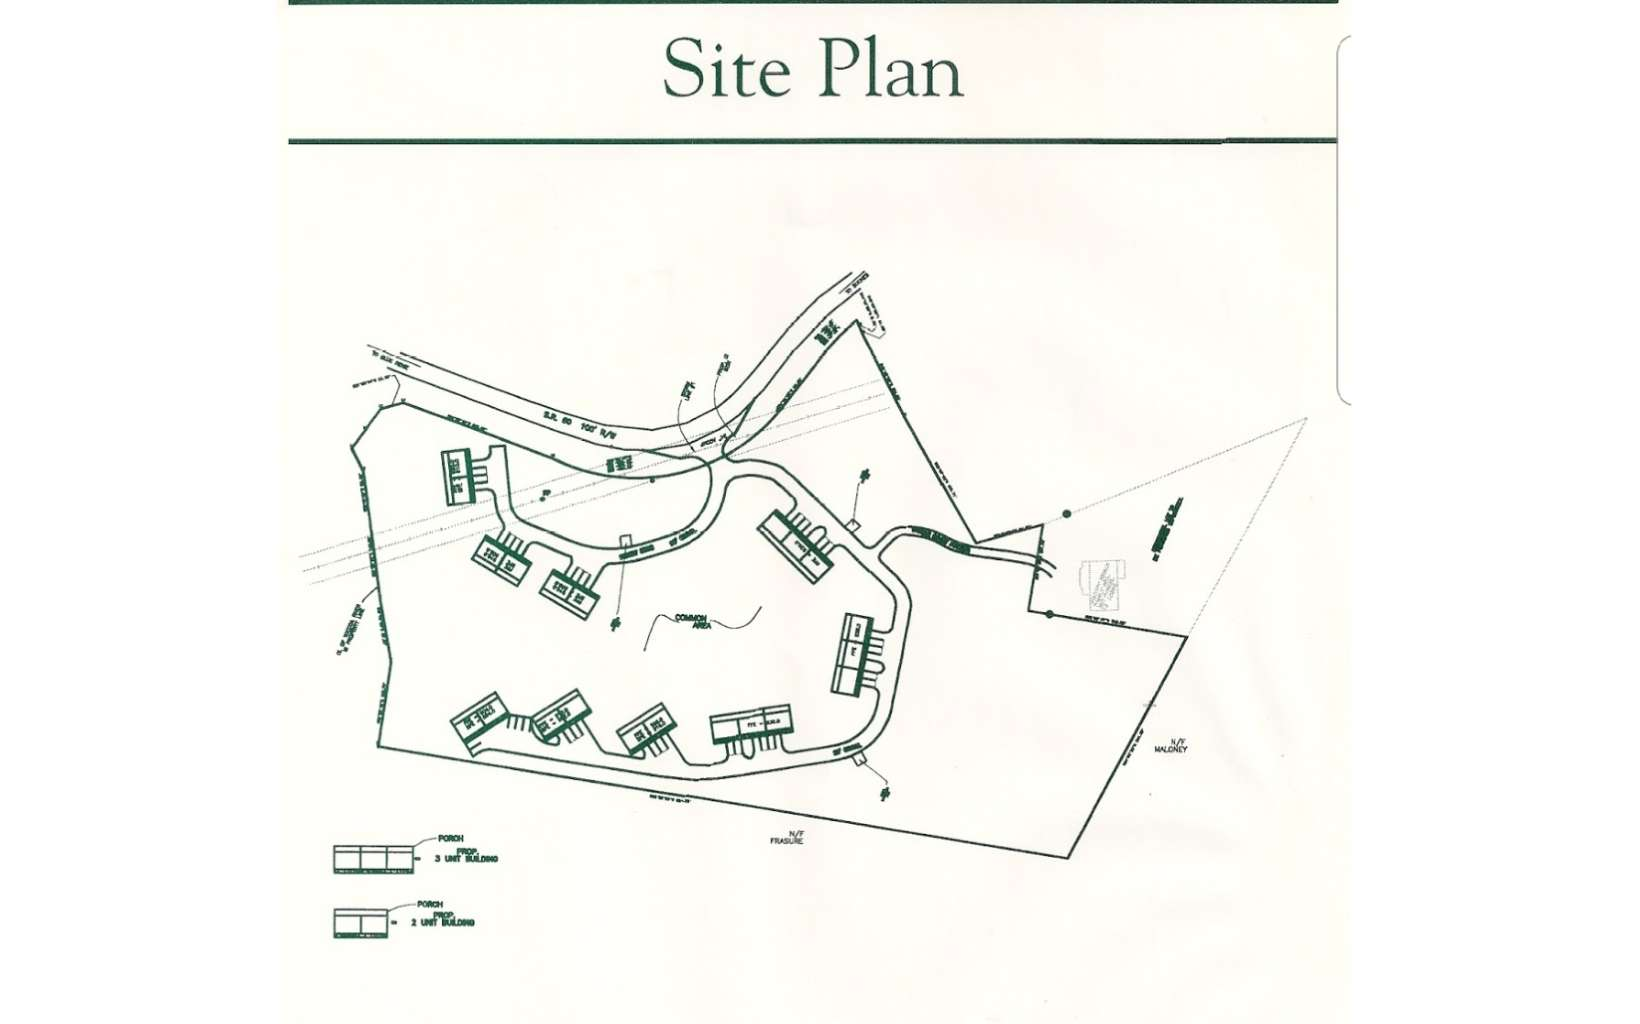 309504 Suches Subdivision being developed